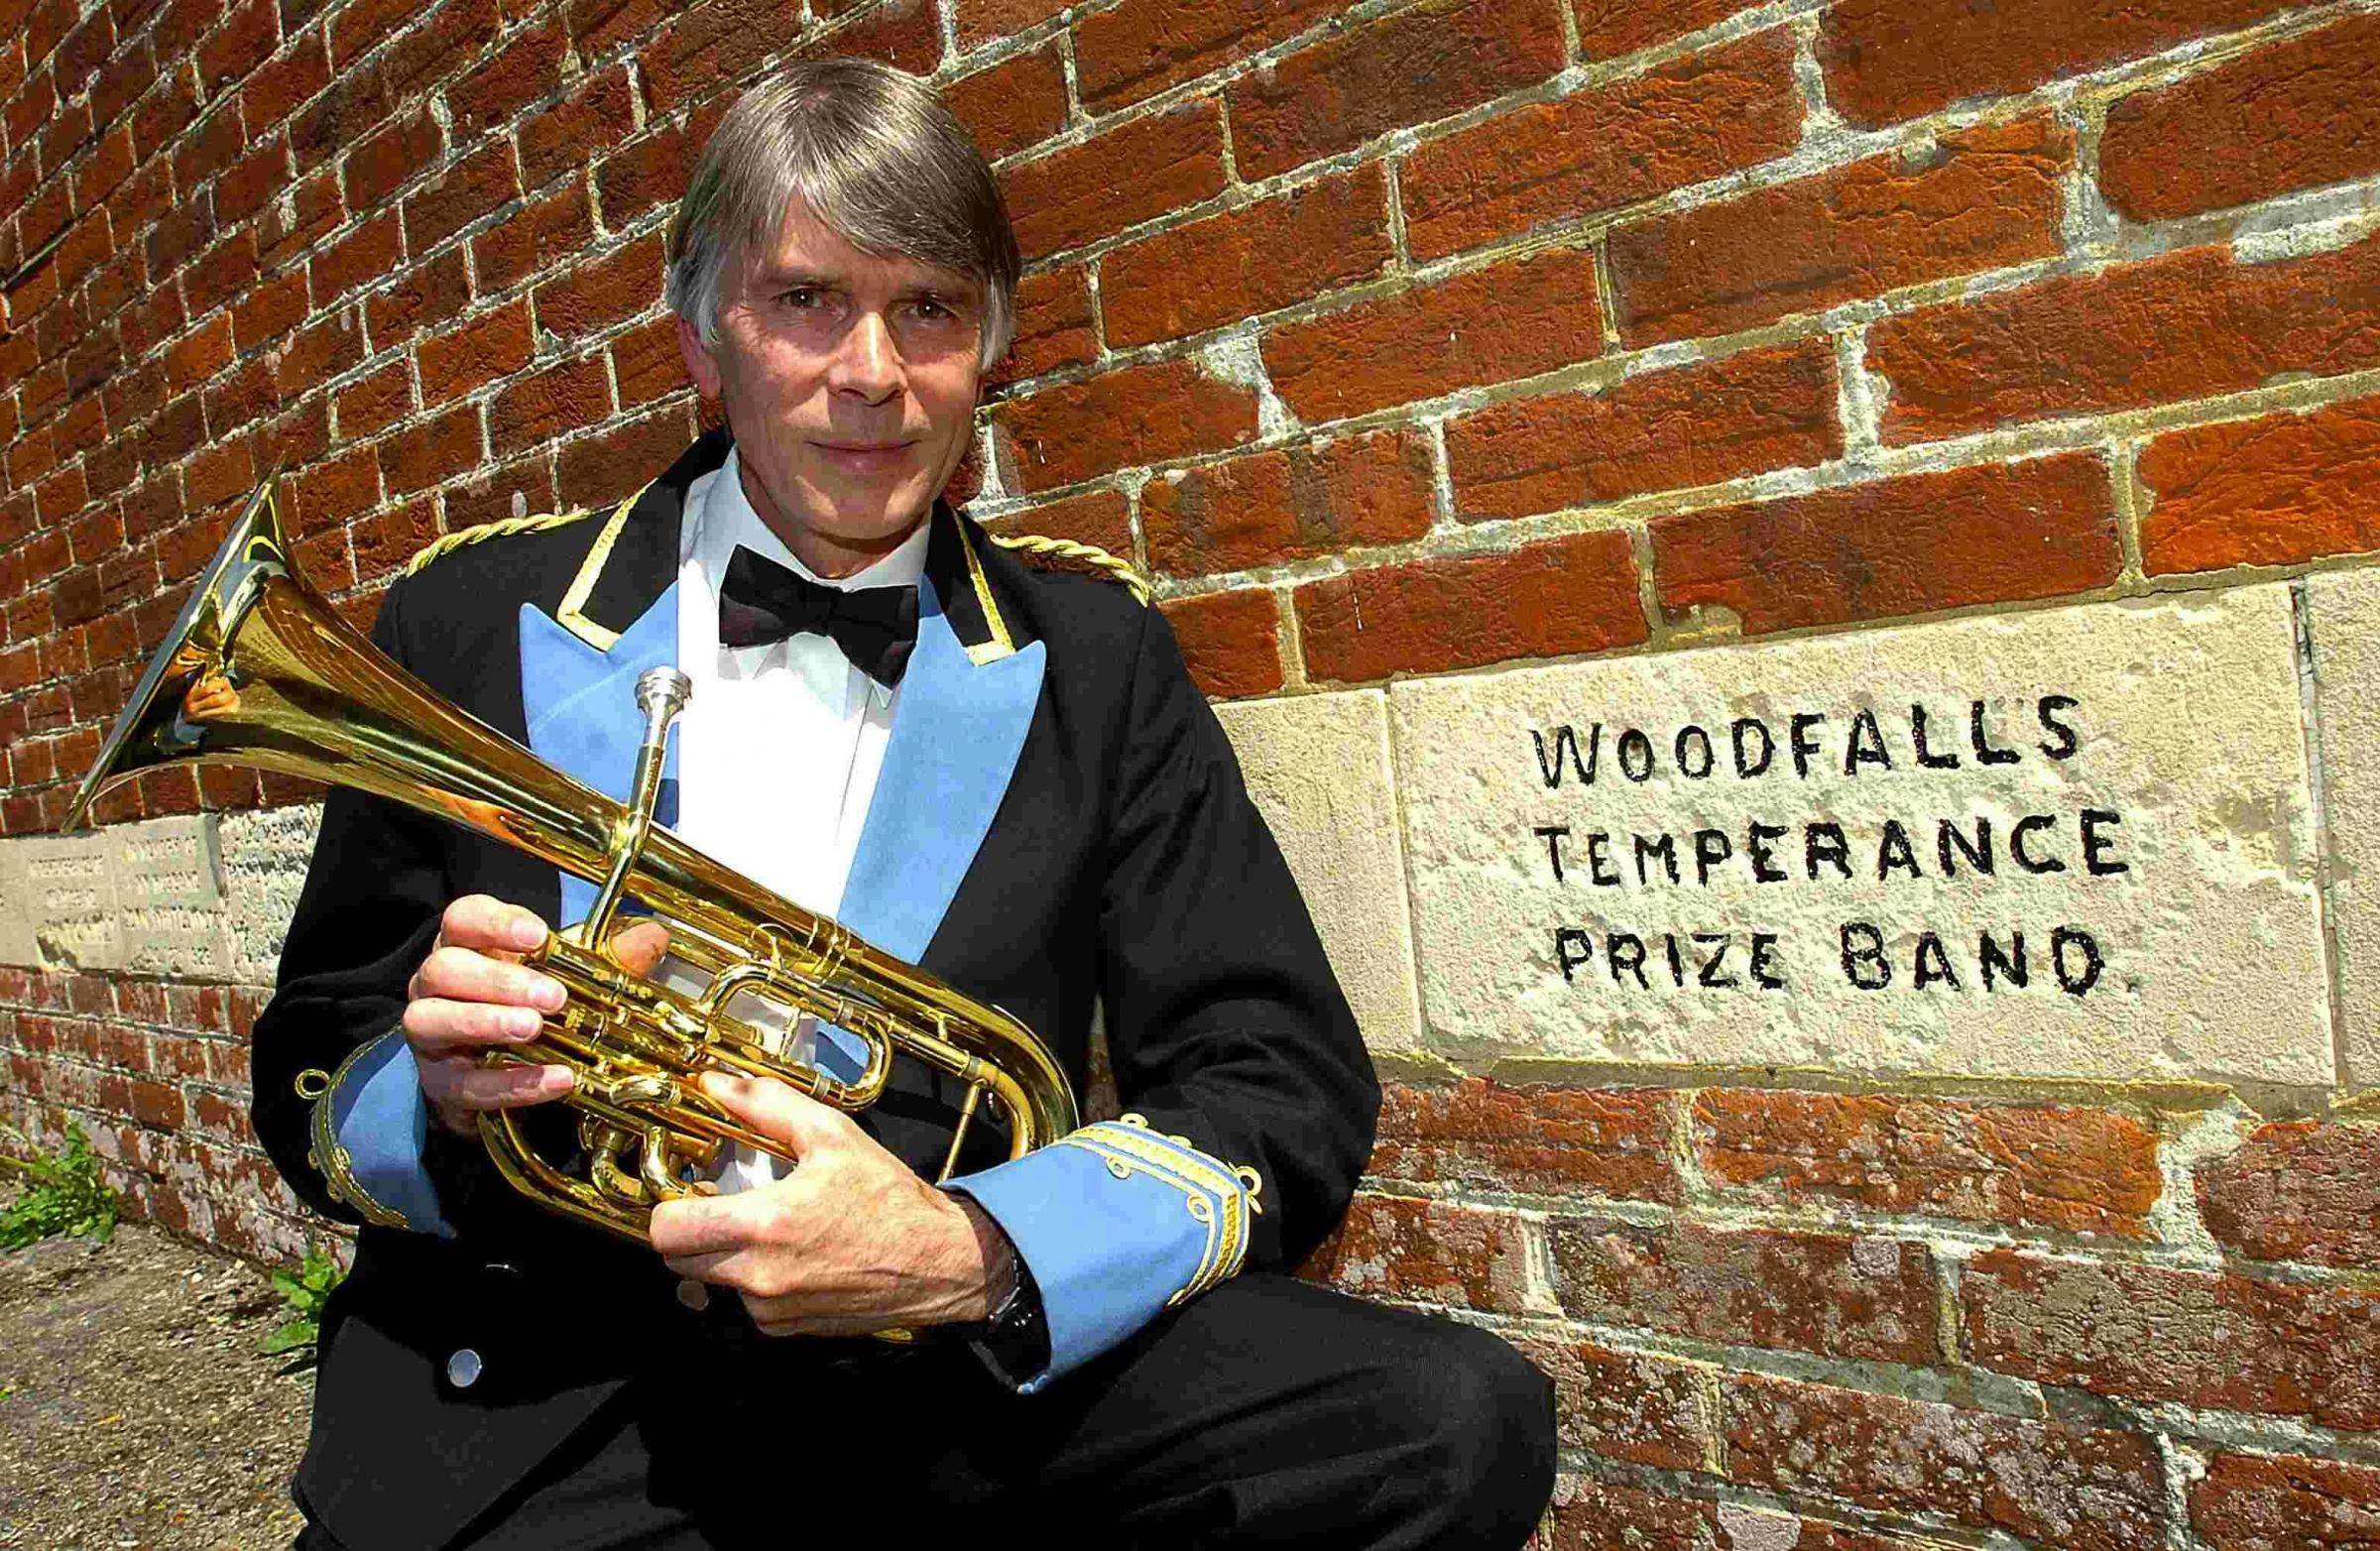 Brass band member marks 40 years